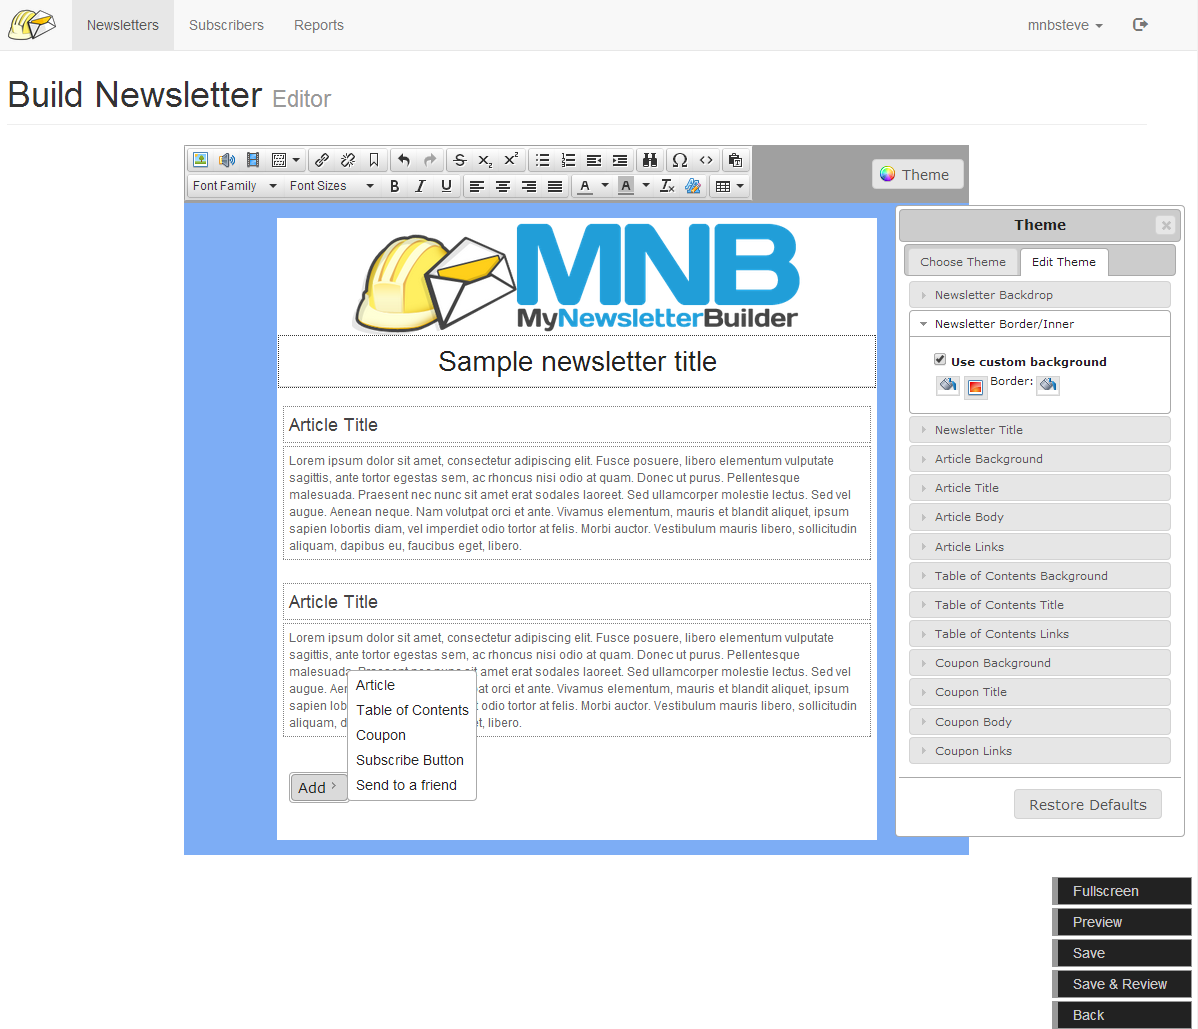 mynewsletterbuilder info and compare this email marketing software